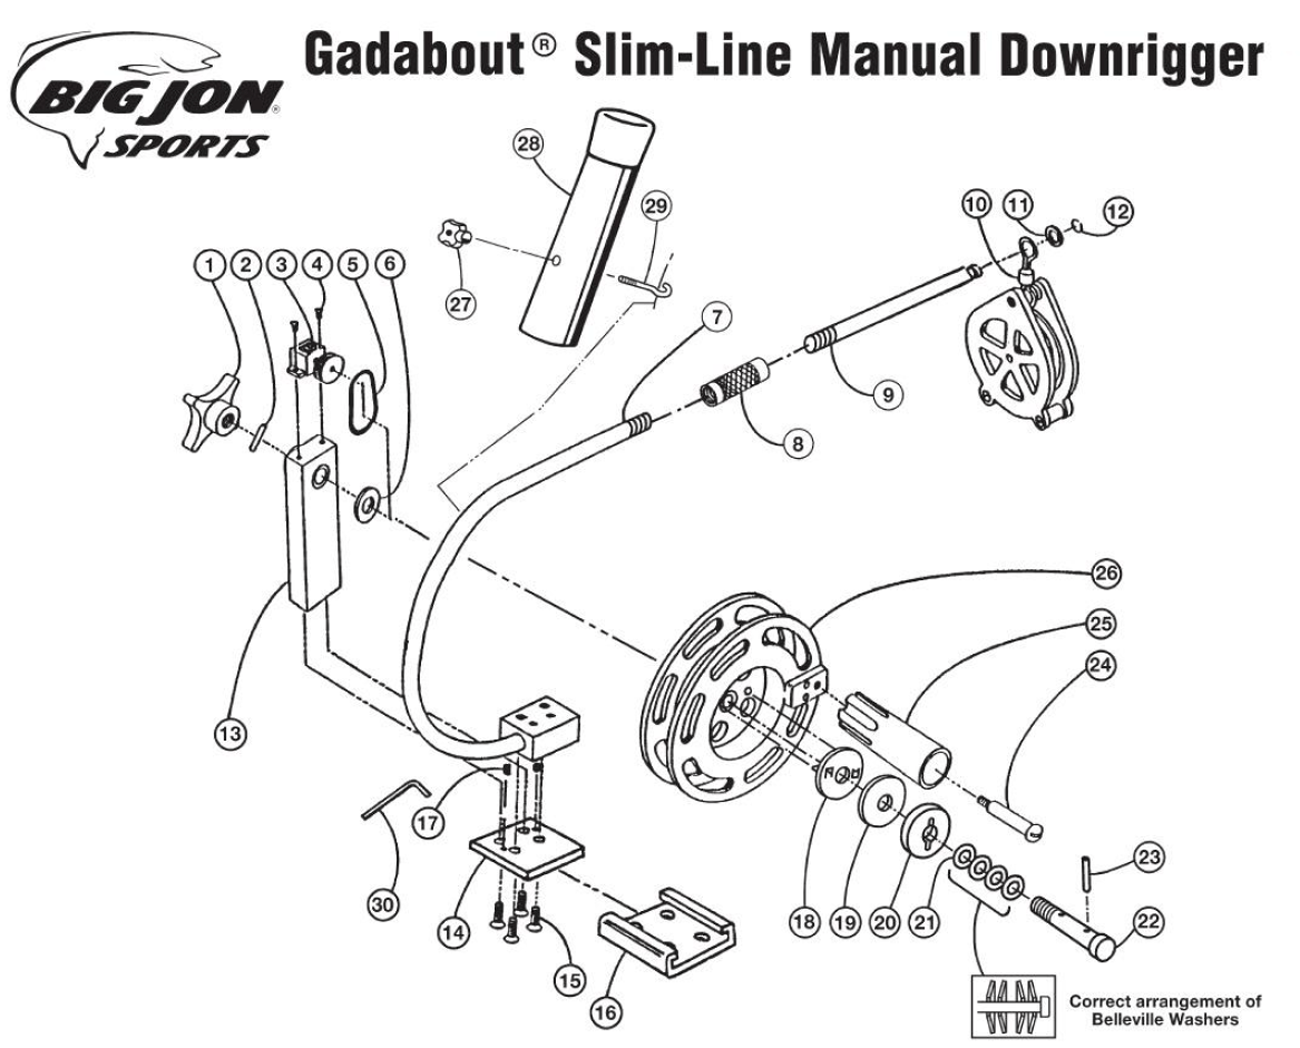 Order Big Jon Gadabout Slim-Line Manual Downrigger parts